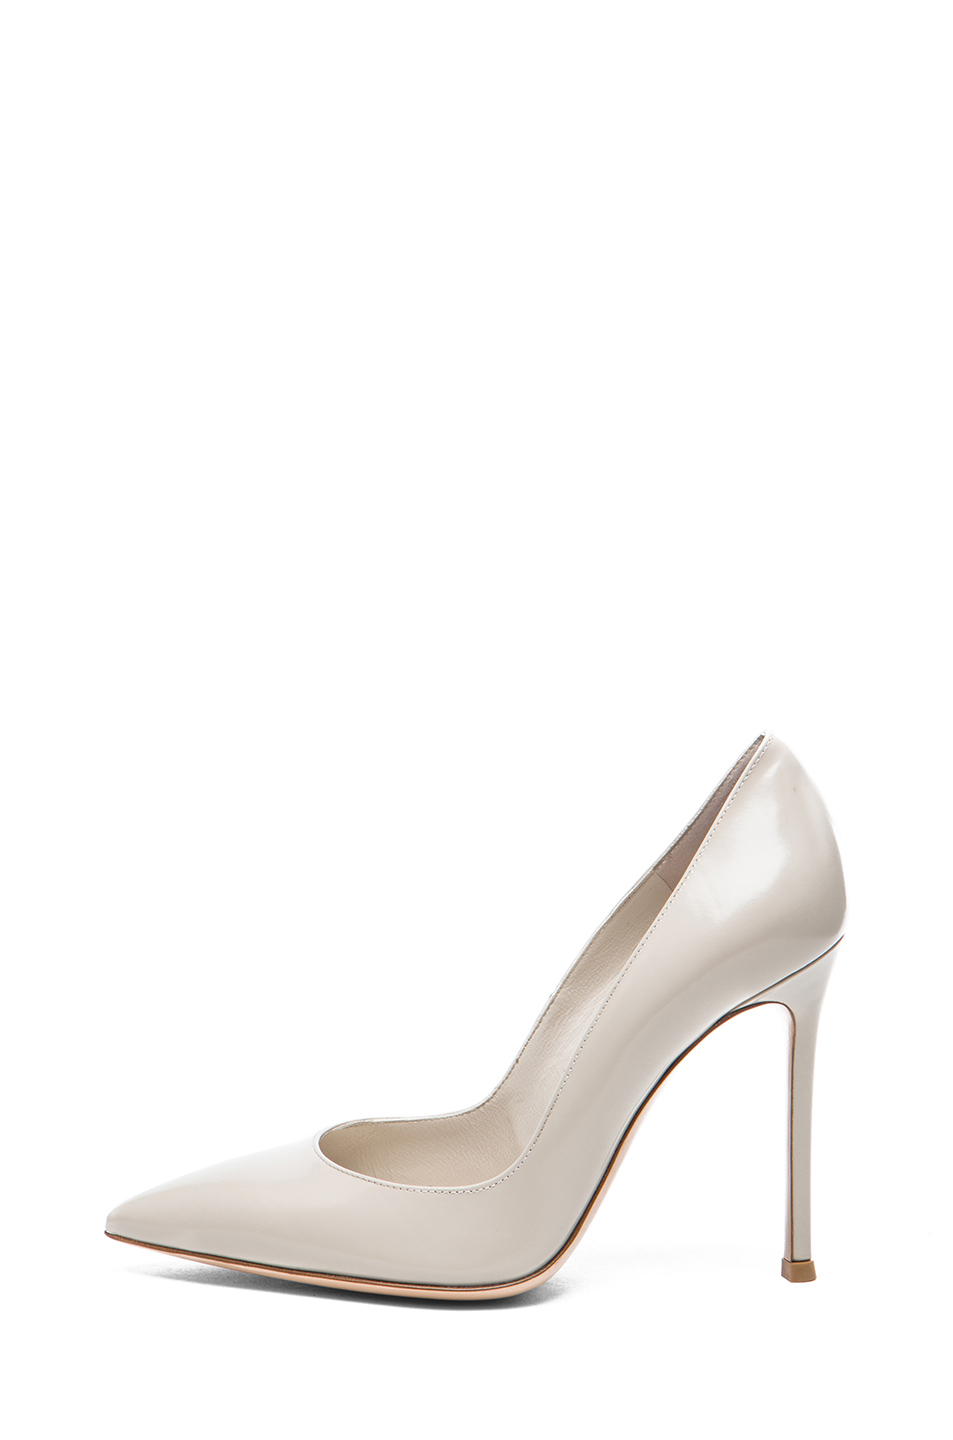 Gianvito Rossi|Leather Pump in Shell